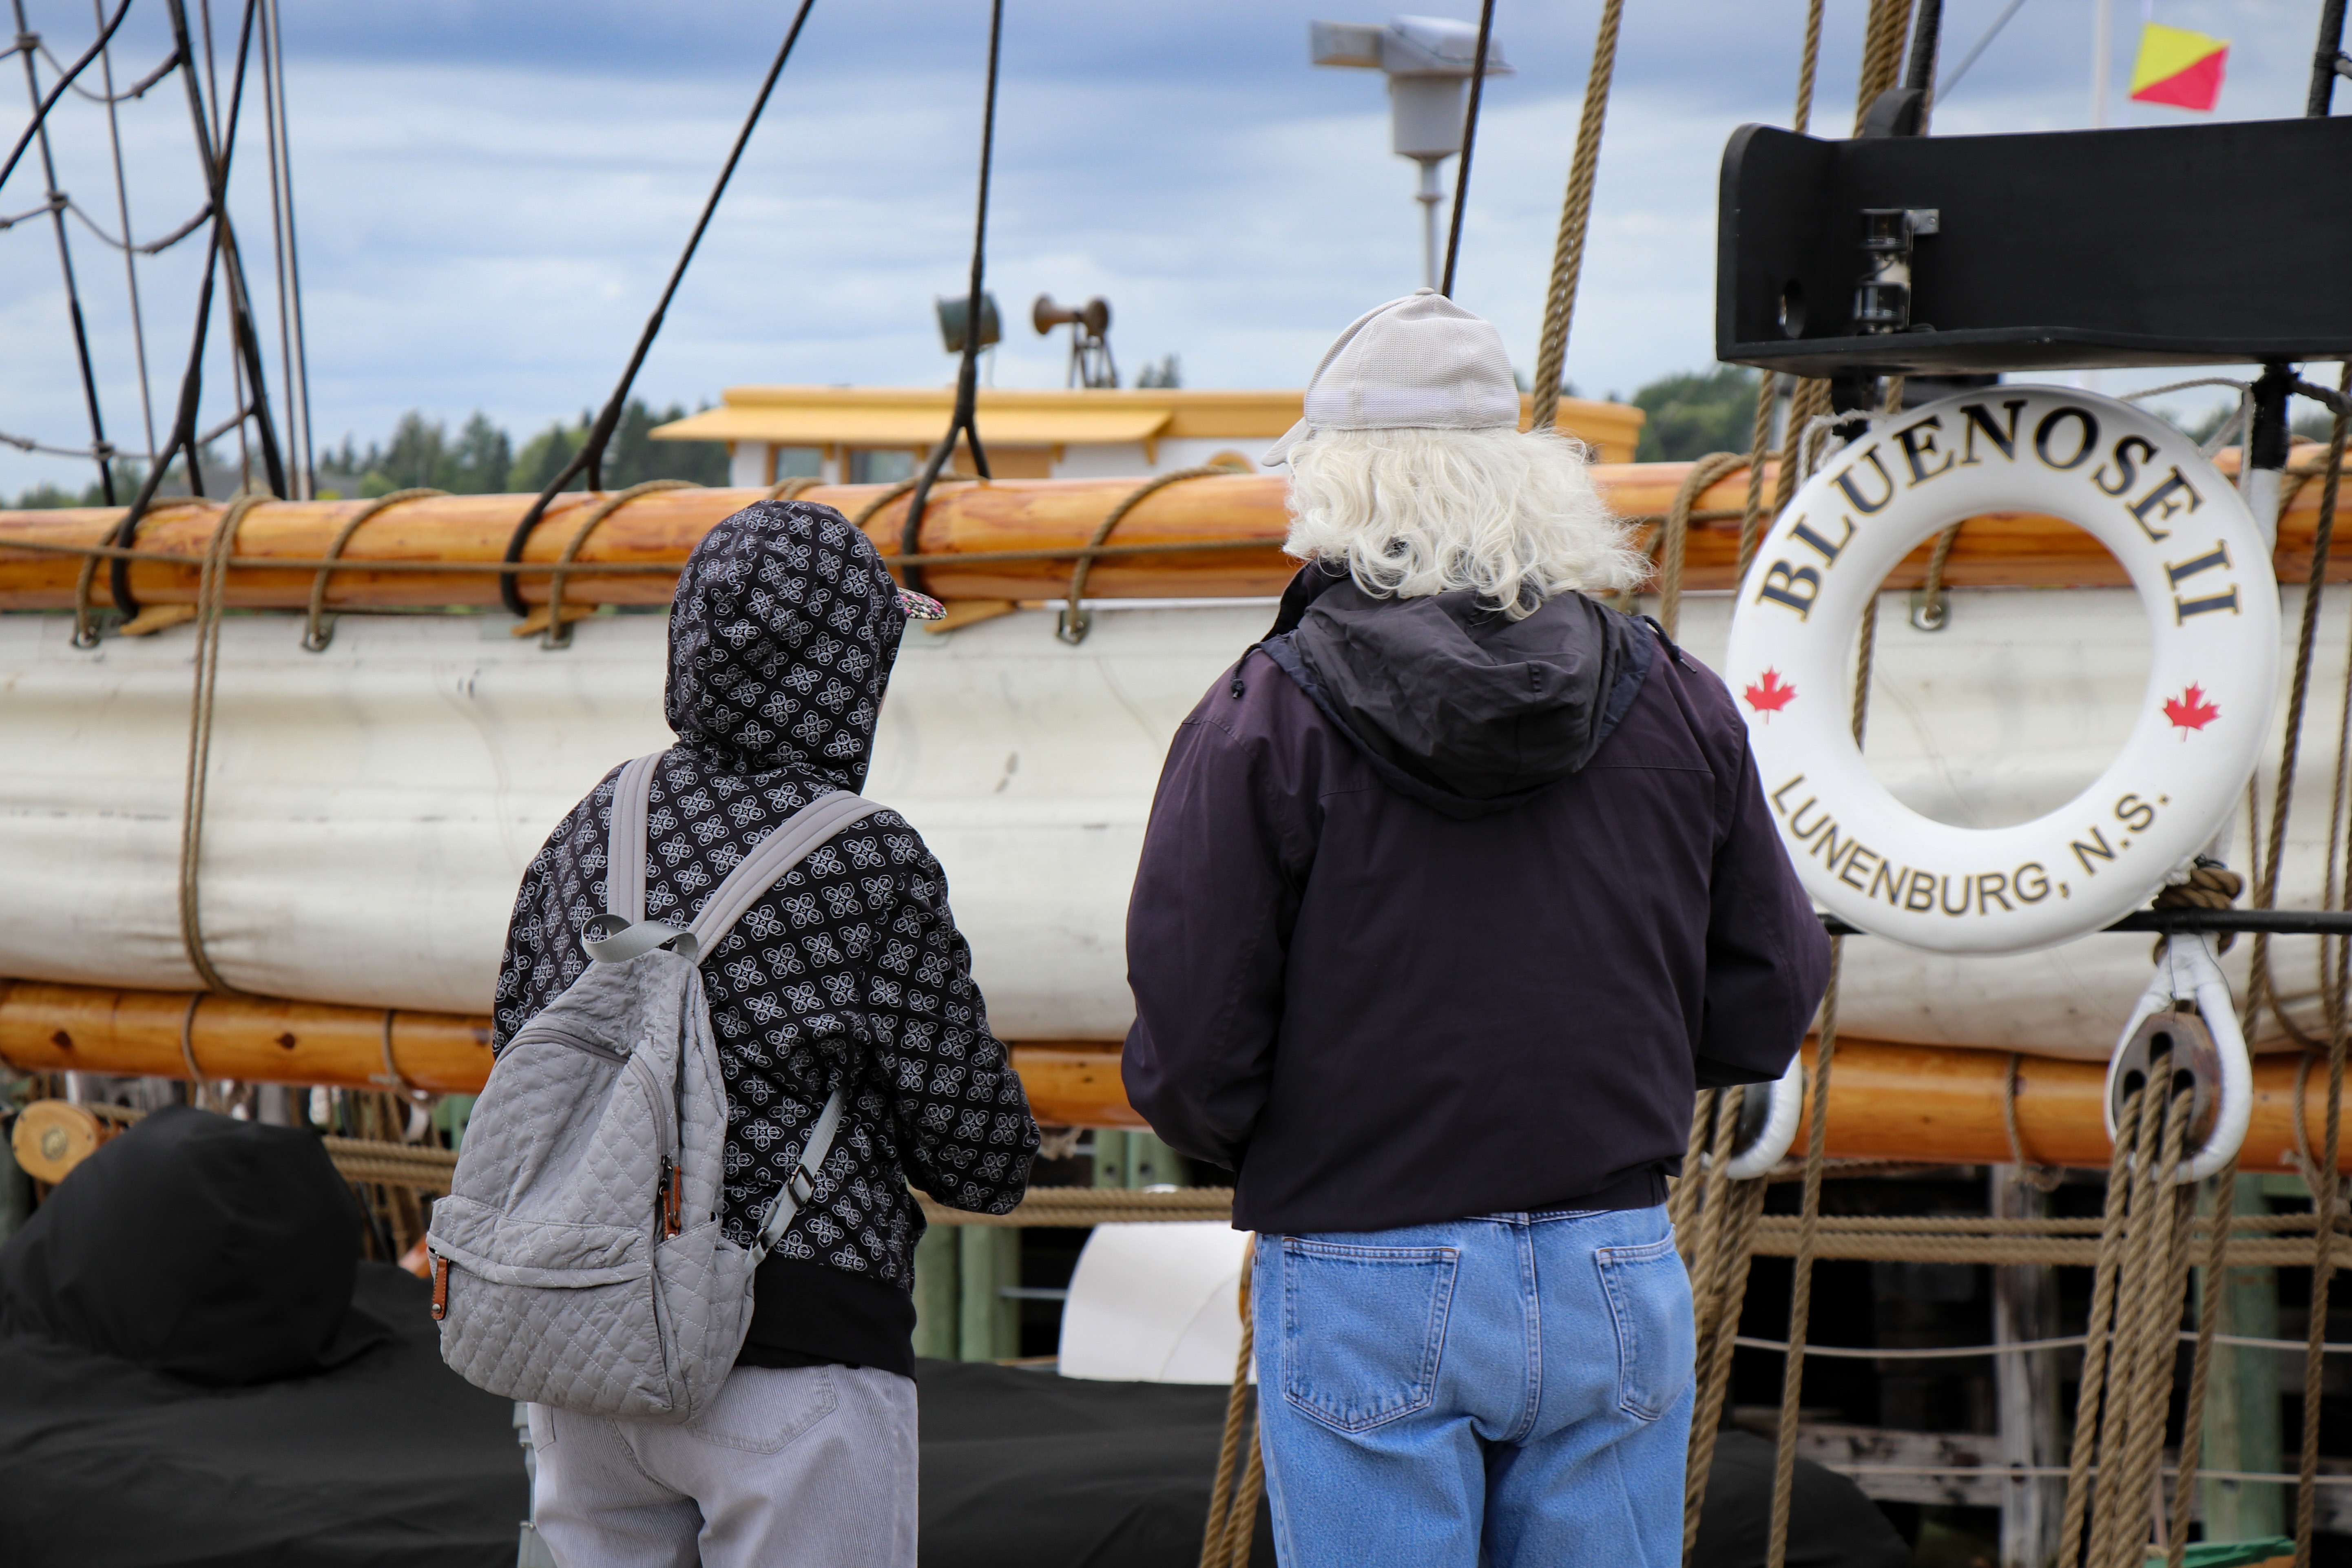 Tourists continue to flock to Lunenburg. (Emma Davie/CBC)